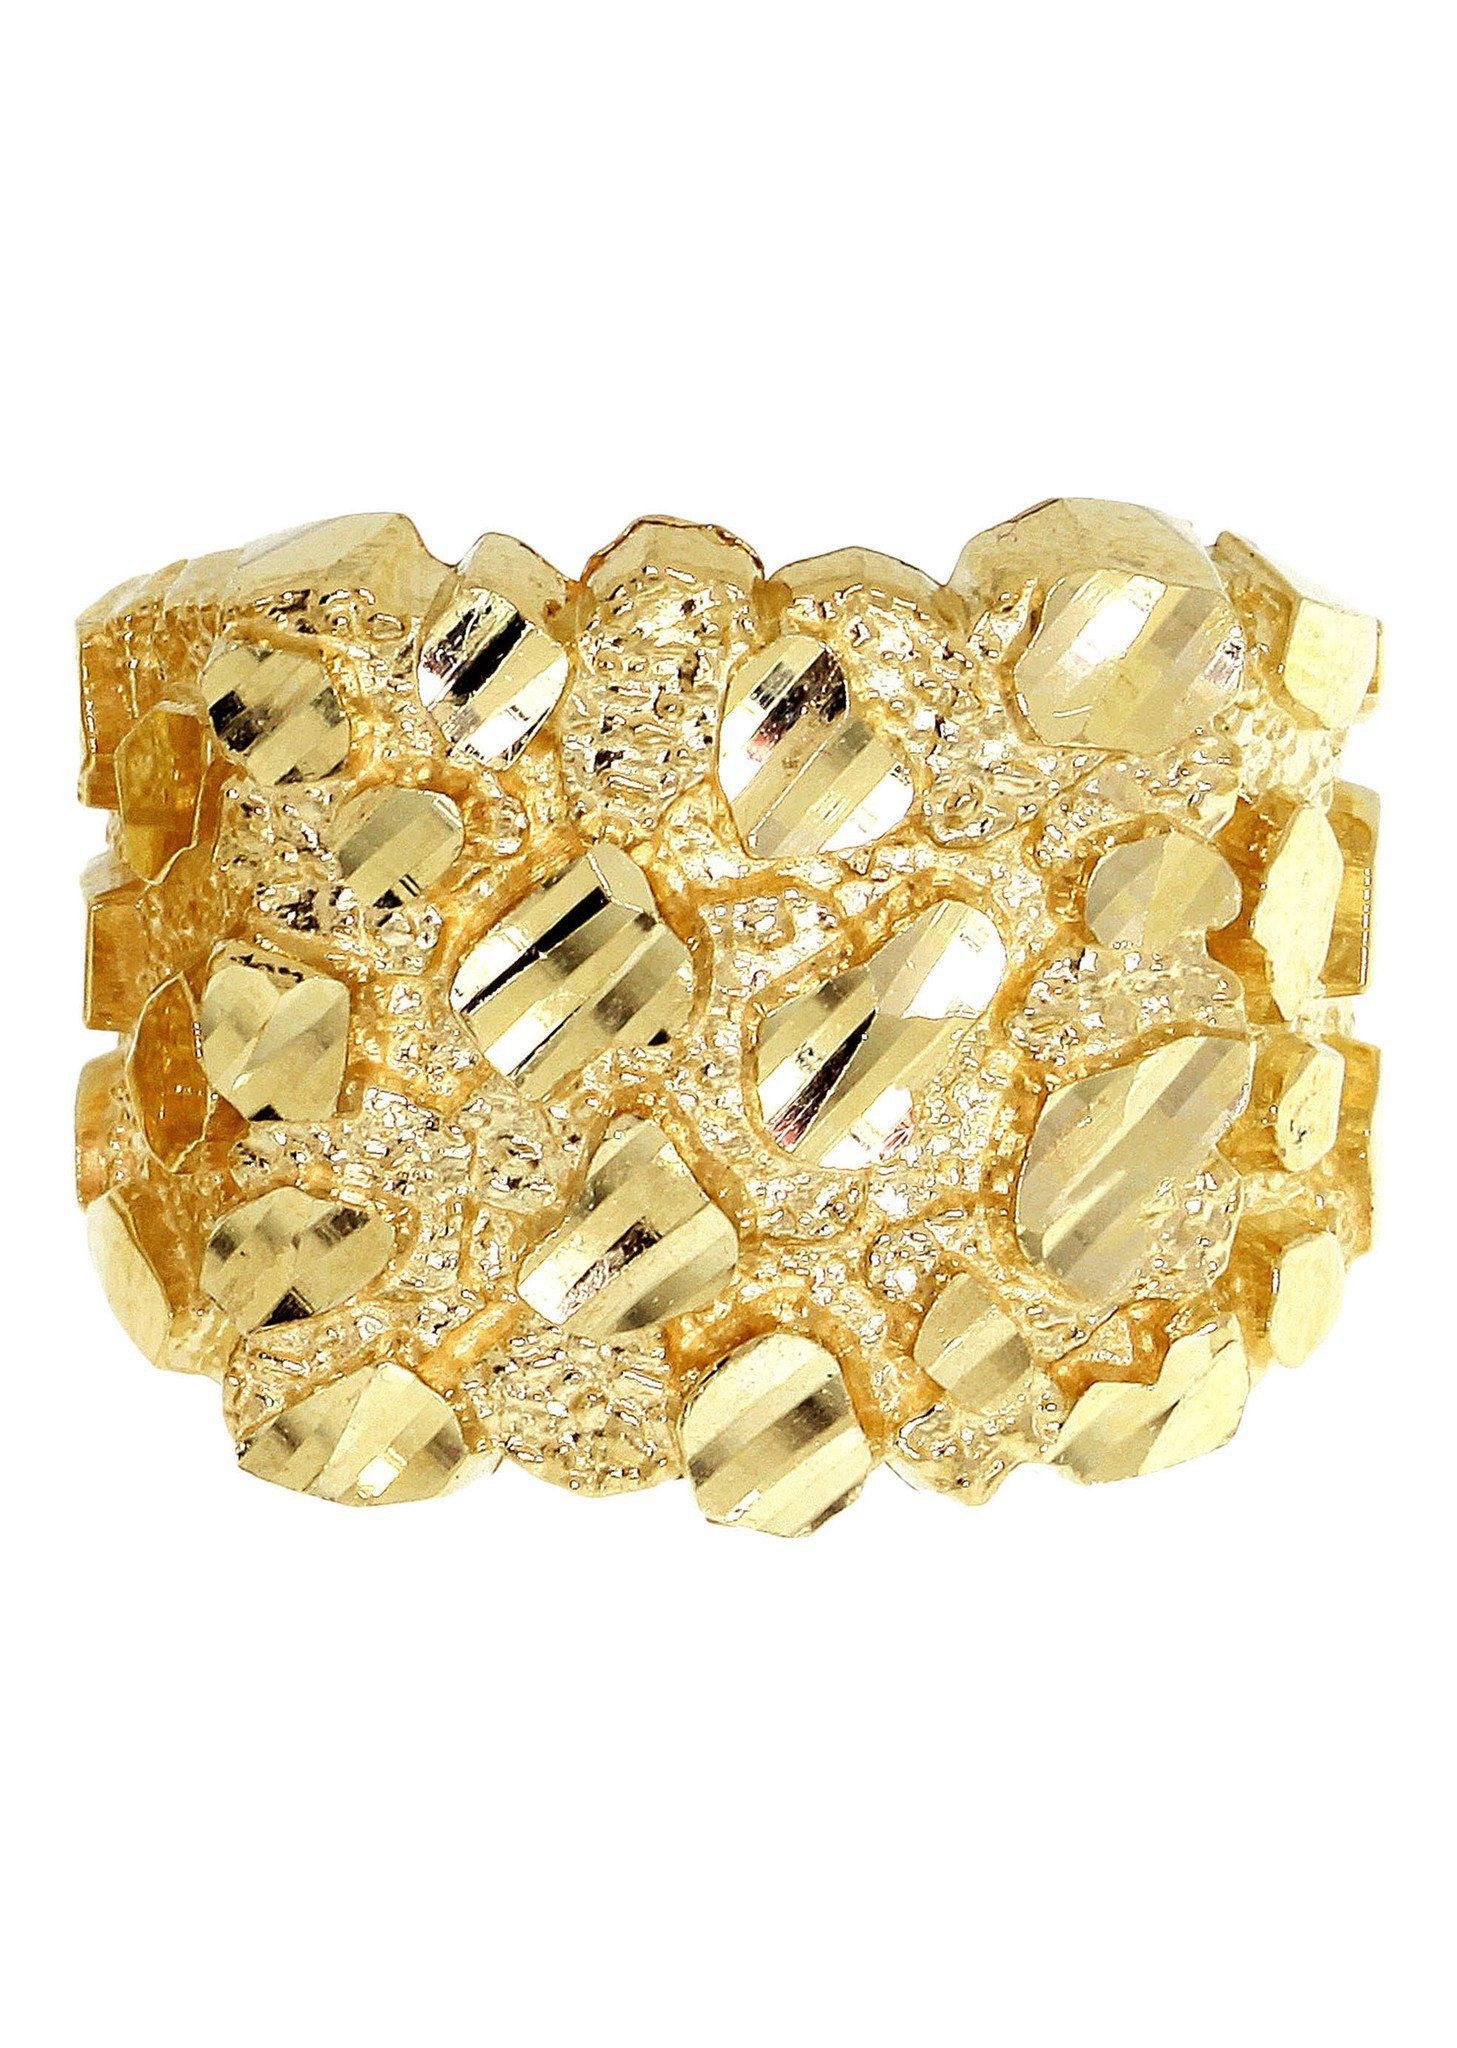 Gold Nugget Ring Mens Ring 10K Gold 6.9 Grams in 2020